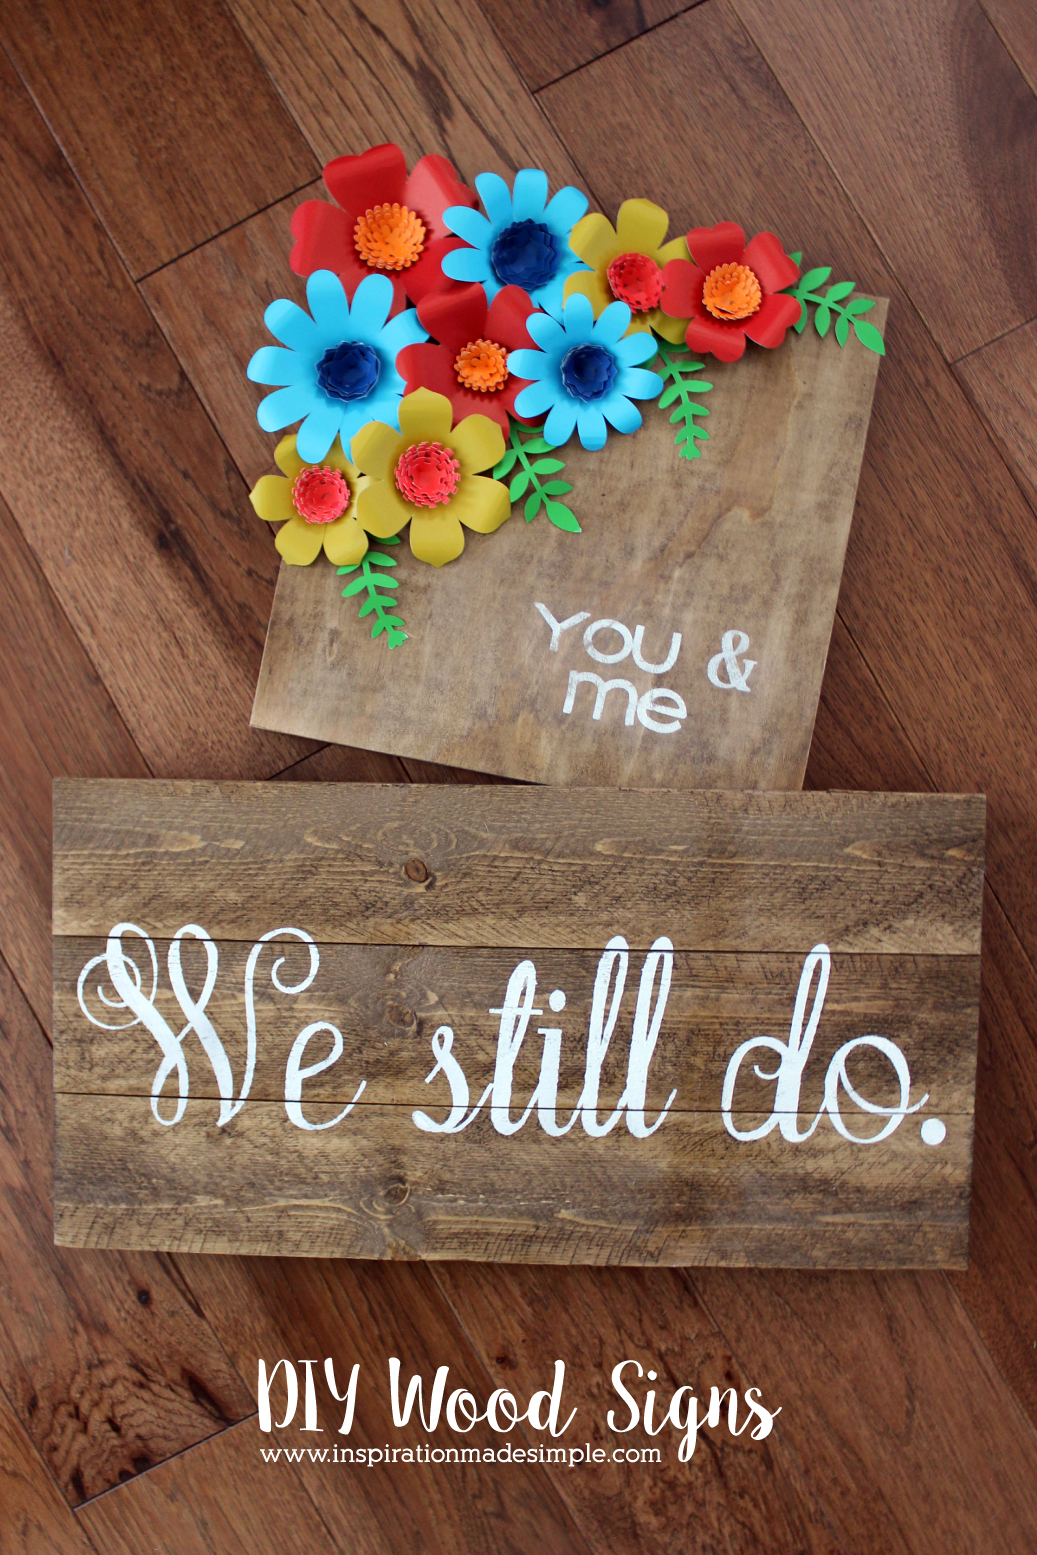 Diy Wood Signs Inspiration Made Simple